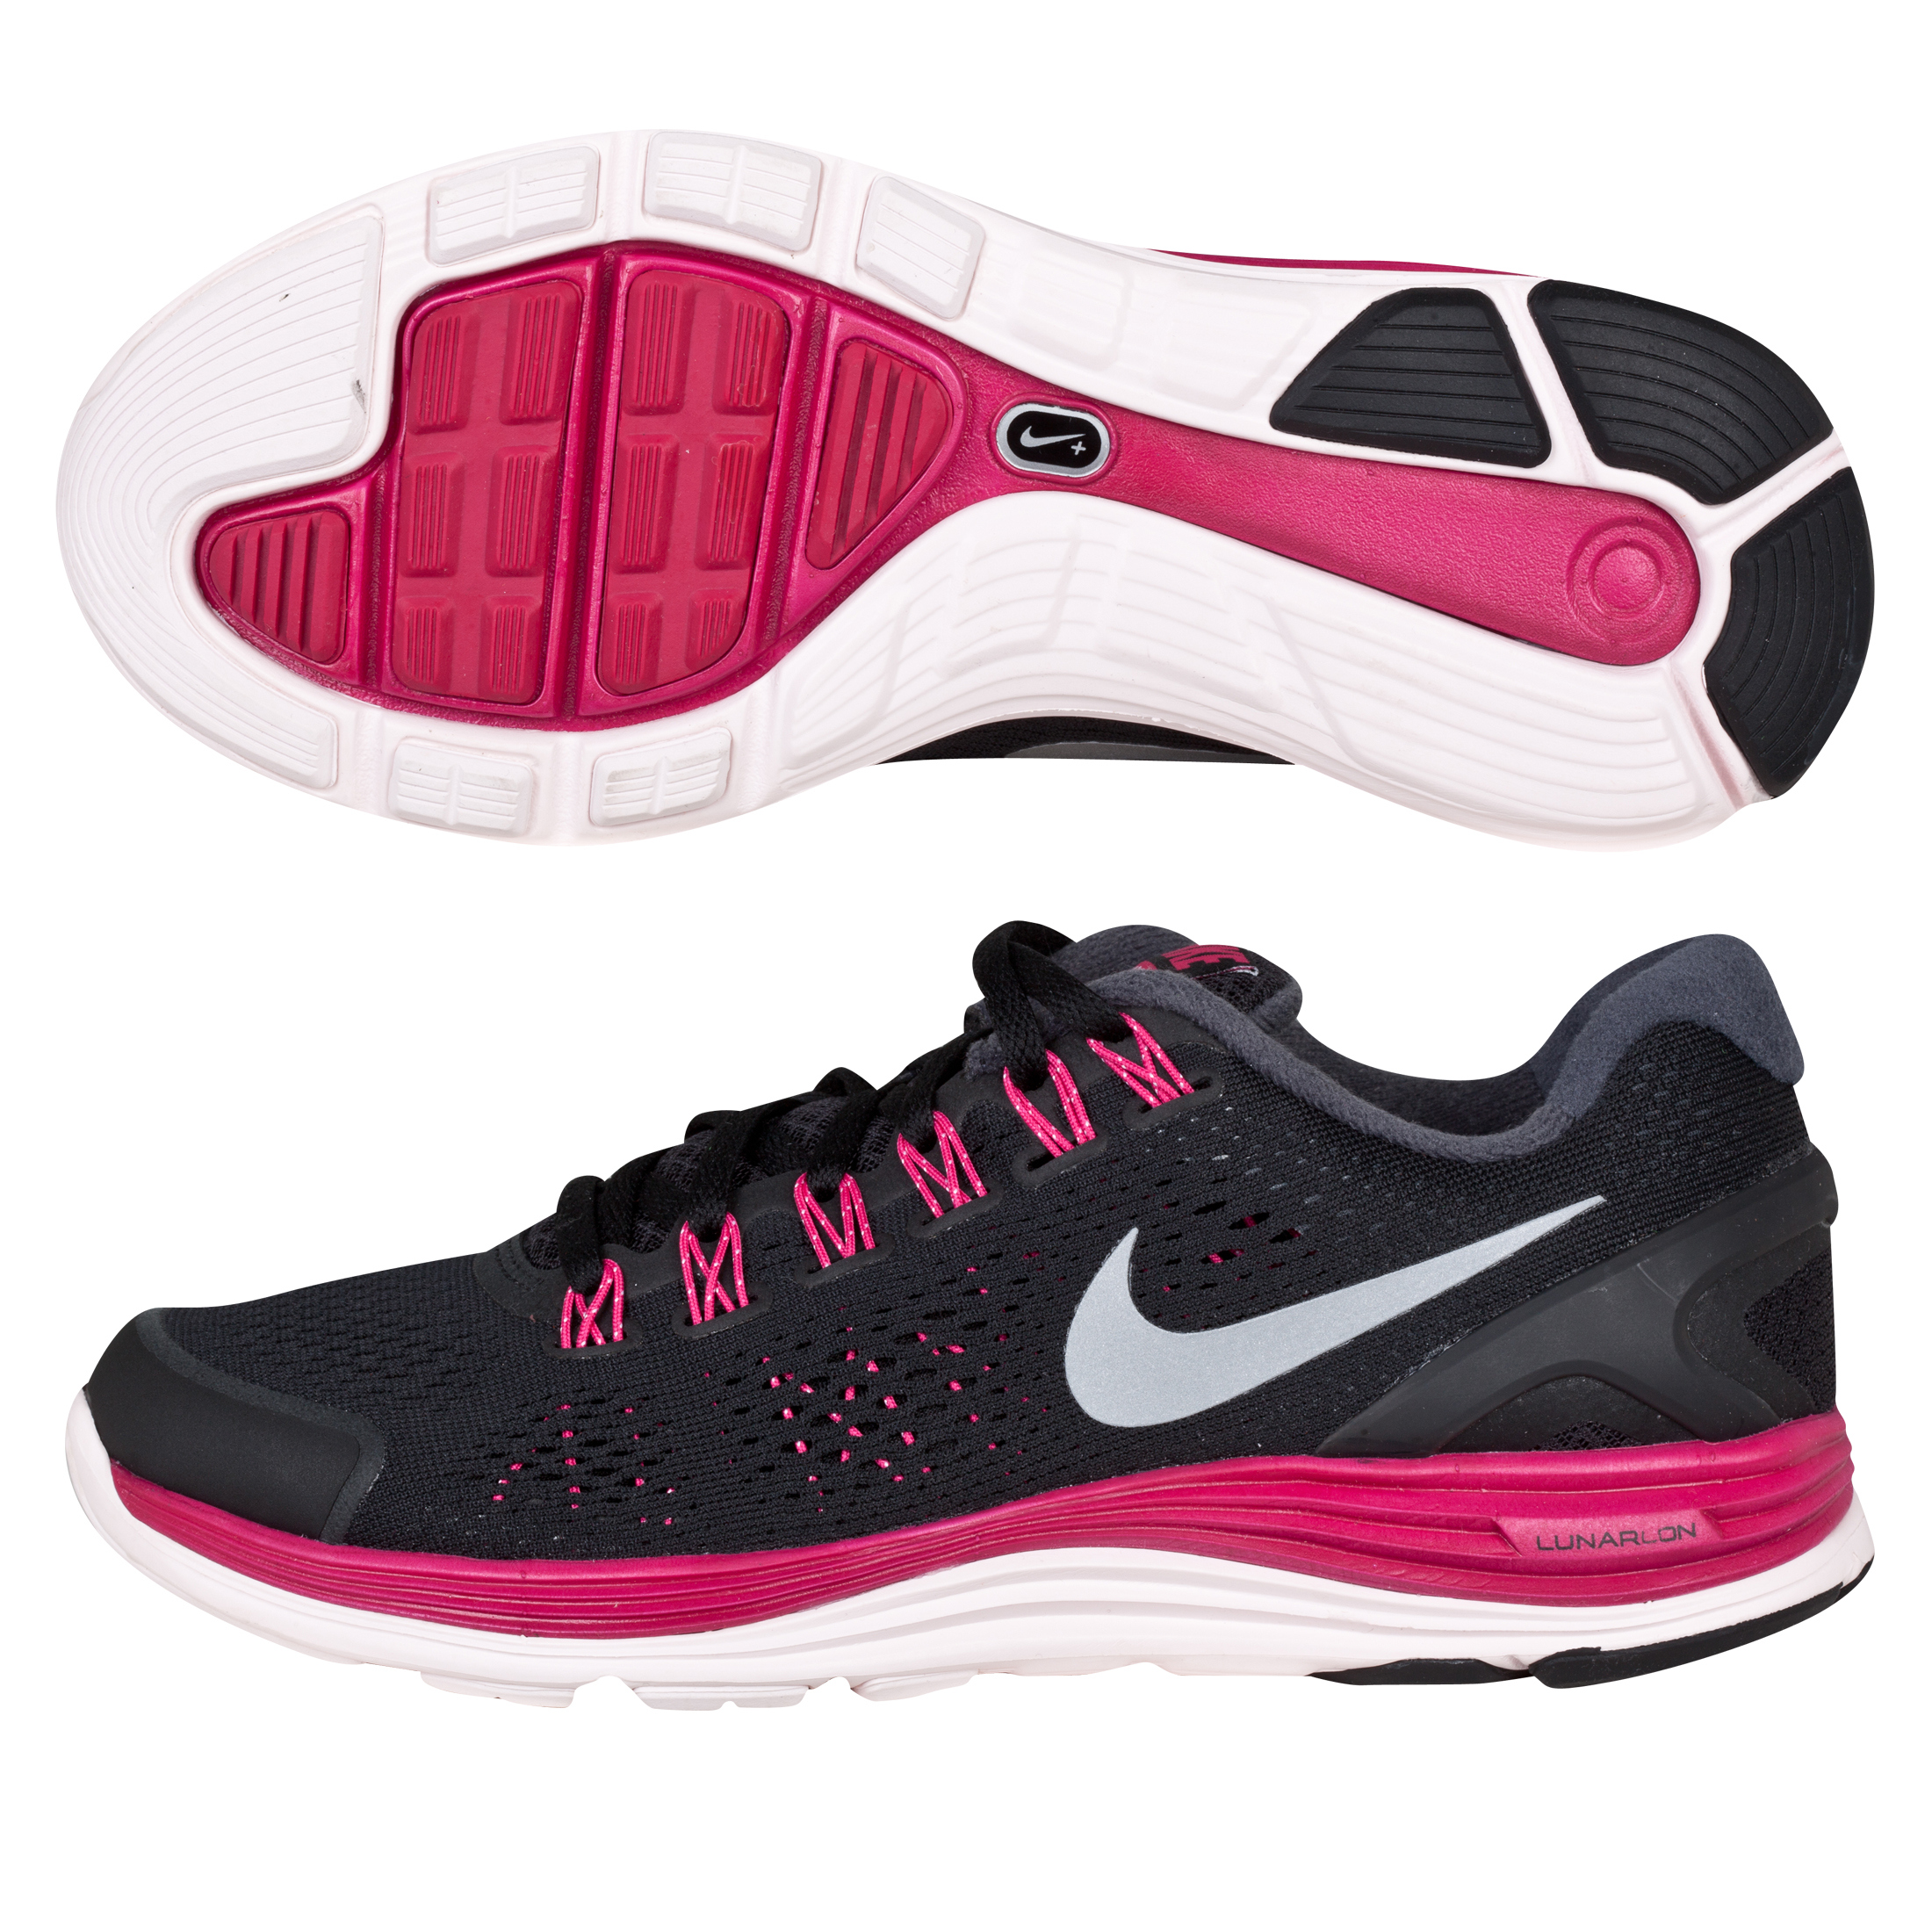 Nike Lunarglide+ 4 Trainers - Black/Silver/Fireberry/Pink - Womens